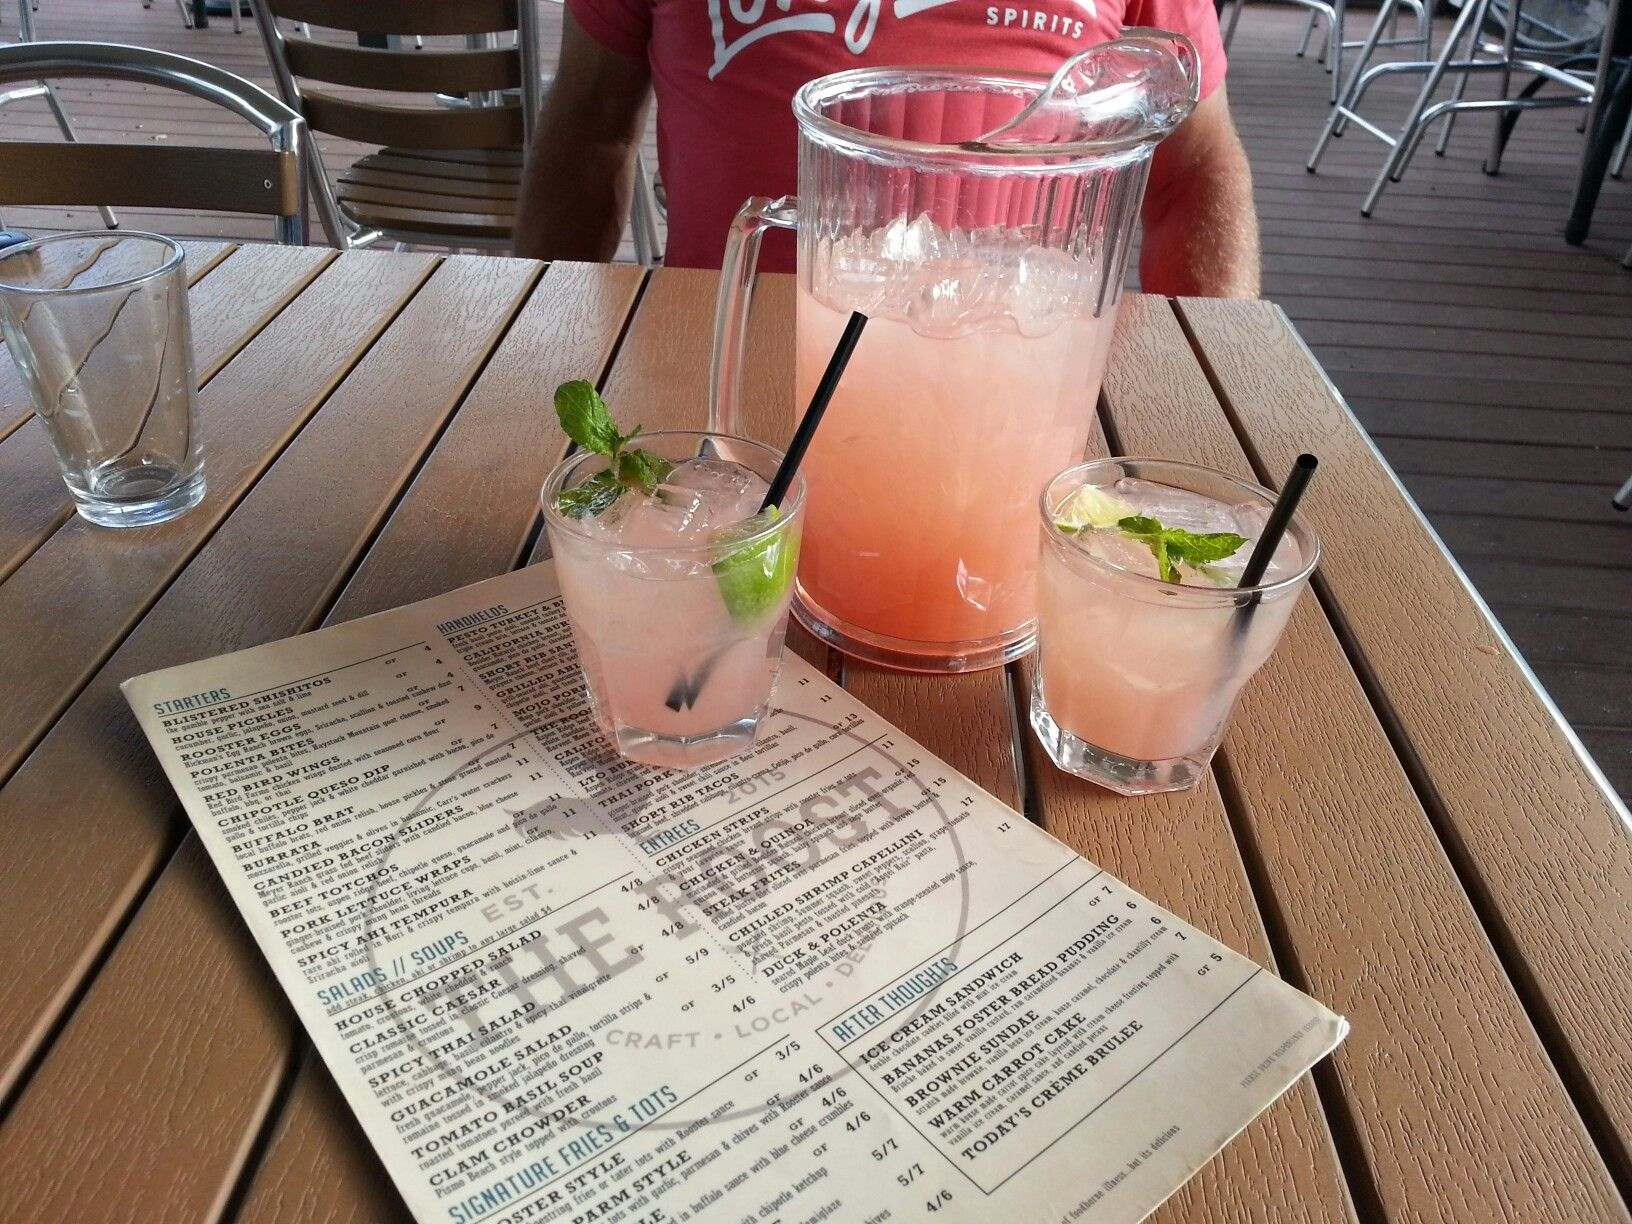 #Yummy #Watermelon #Mojitos @ the #TheRoost #Longmont #Colorado. #Fantastic #food #cocktails #Atmosphere. #GoodEats #recommended . .  #bar #restaurant #shots #vodka #gin #mixology  #tequila #moonshine #whiskey #bourbon #booze #alcohol #margaritas #martini #scotch